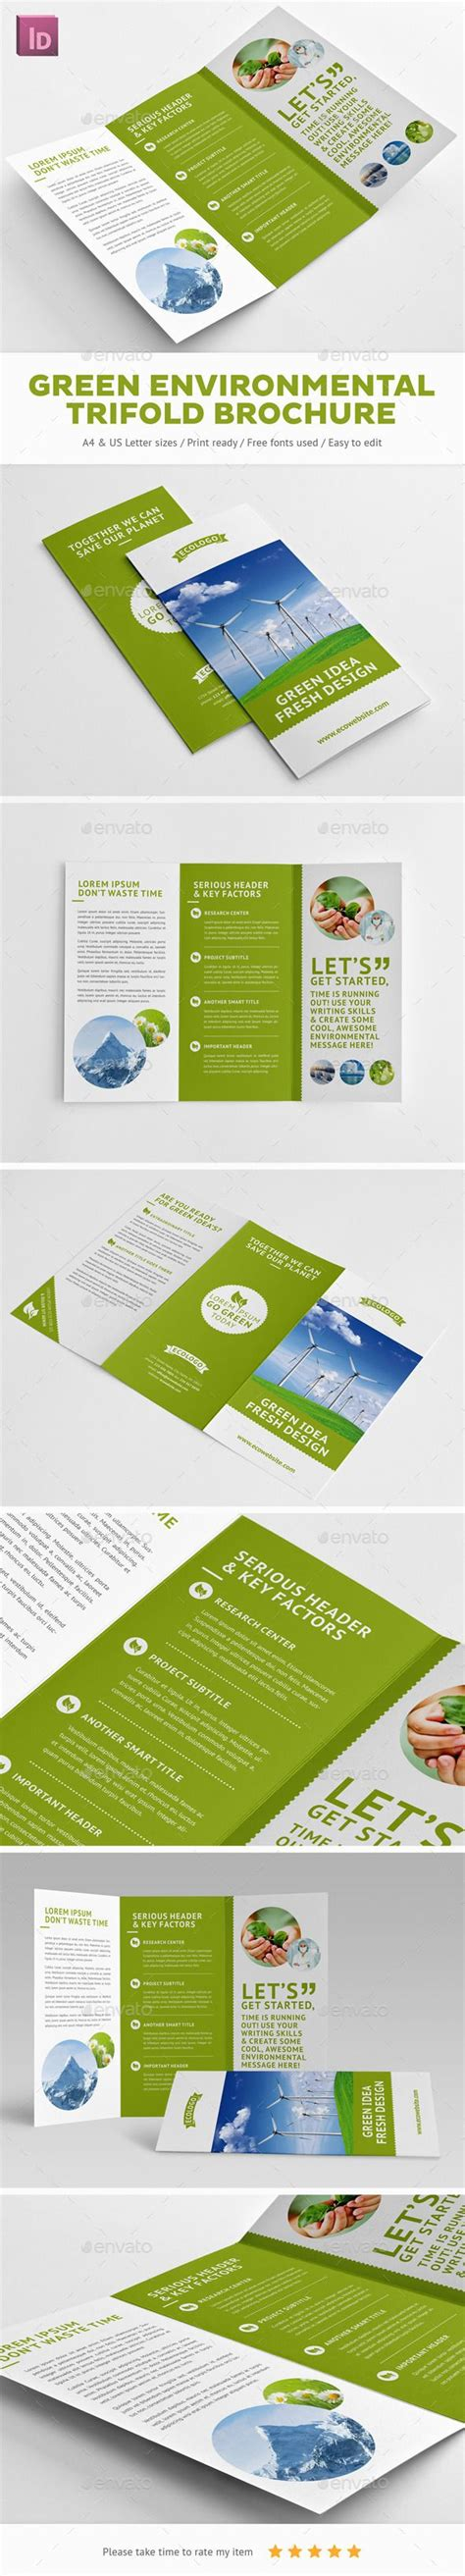 brochure template environmental 43 best infographic images on pinterest infographic